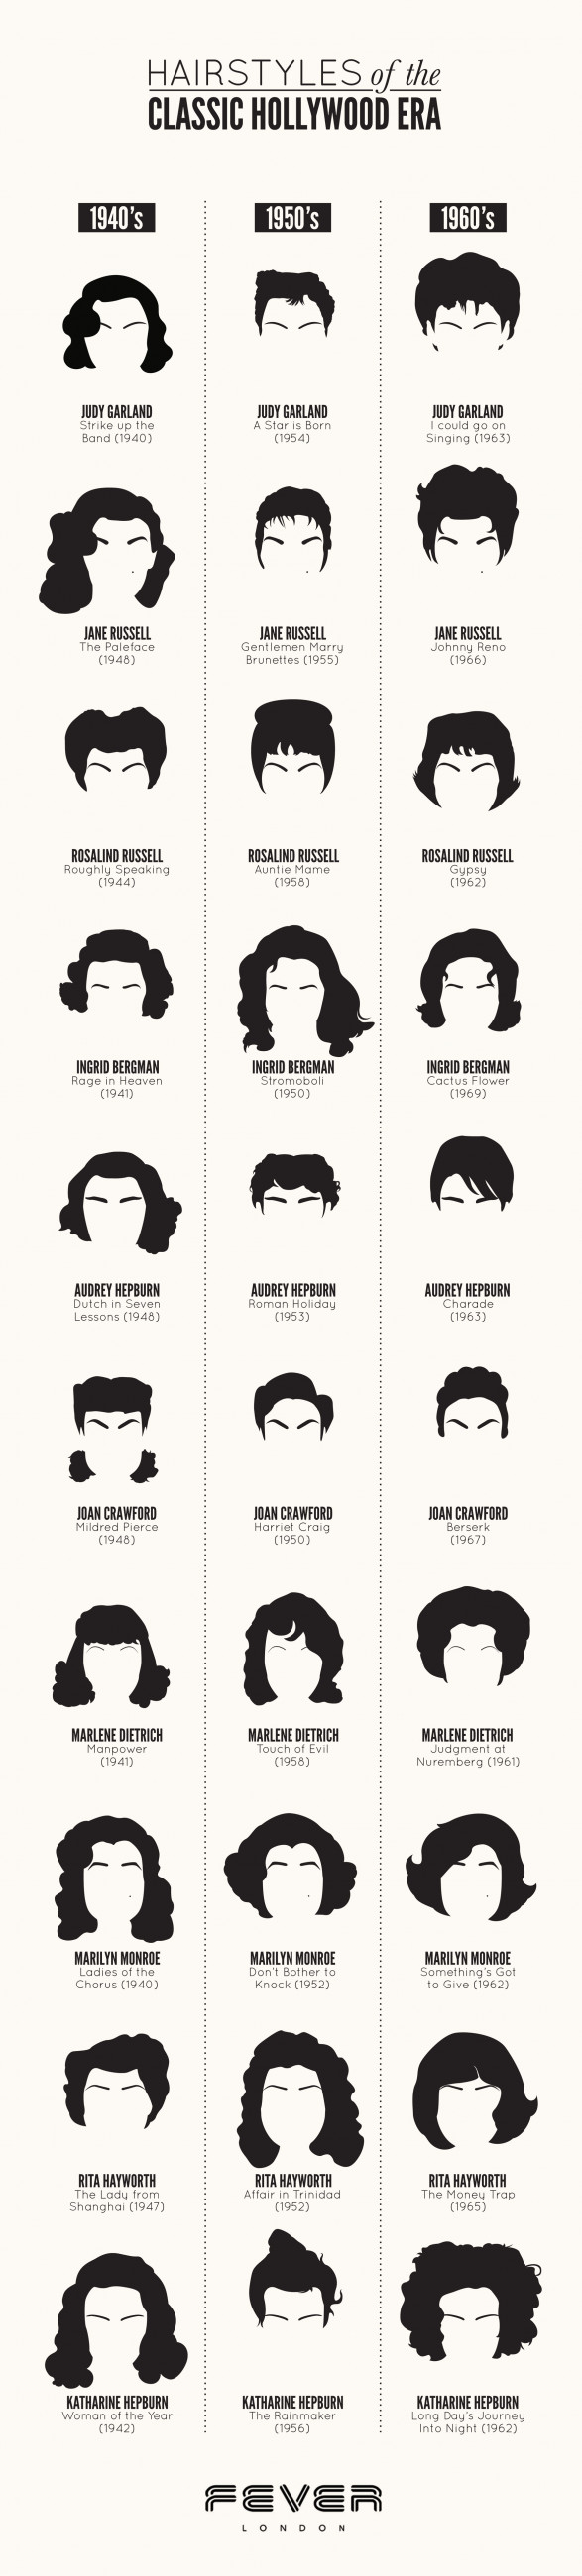 Hairstyles of the Classic Hollywood Era